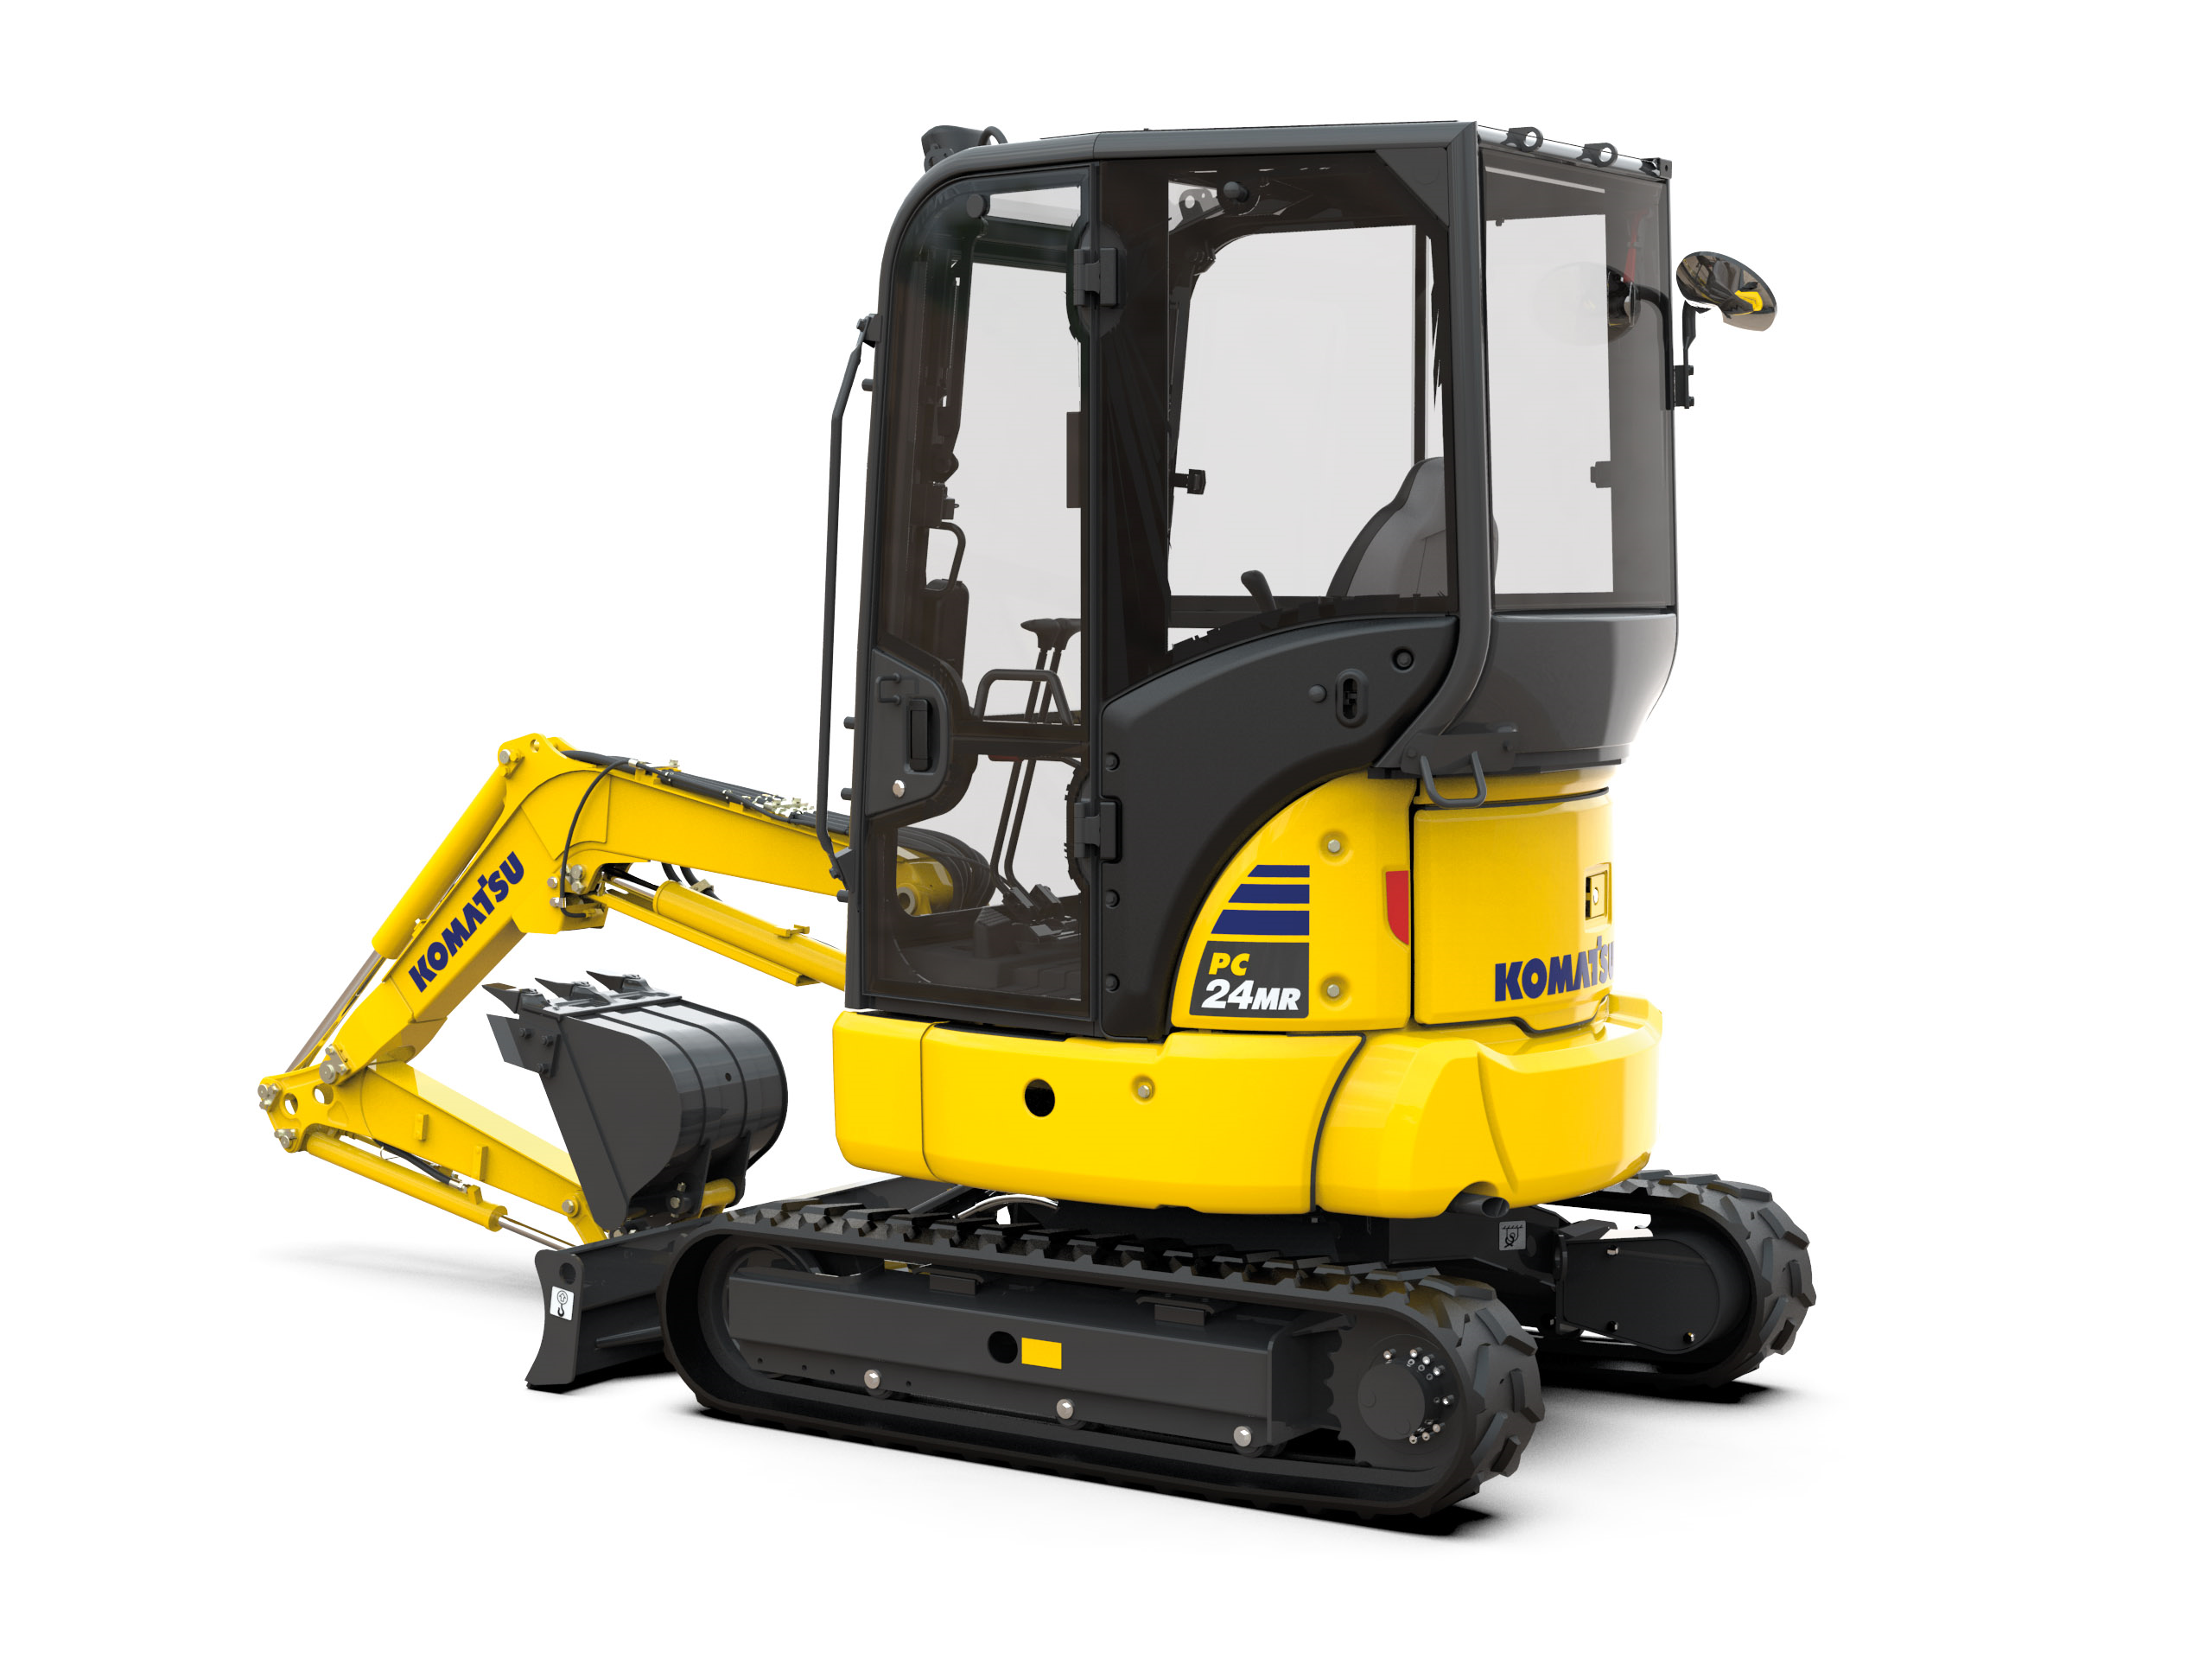 Introducing the new 	PC24MR- 5 mini excavator.